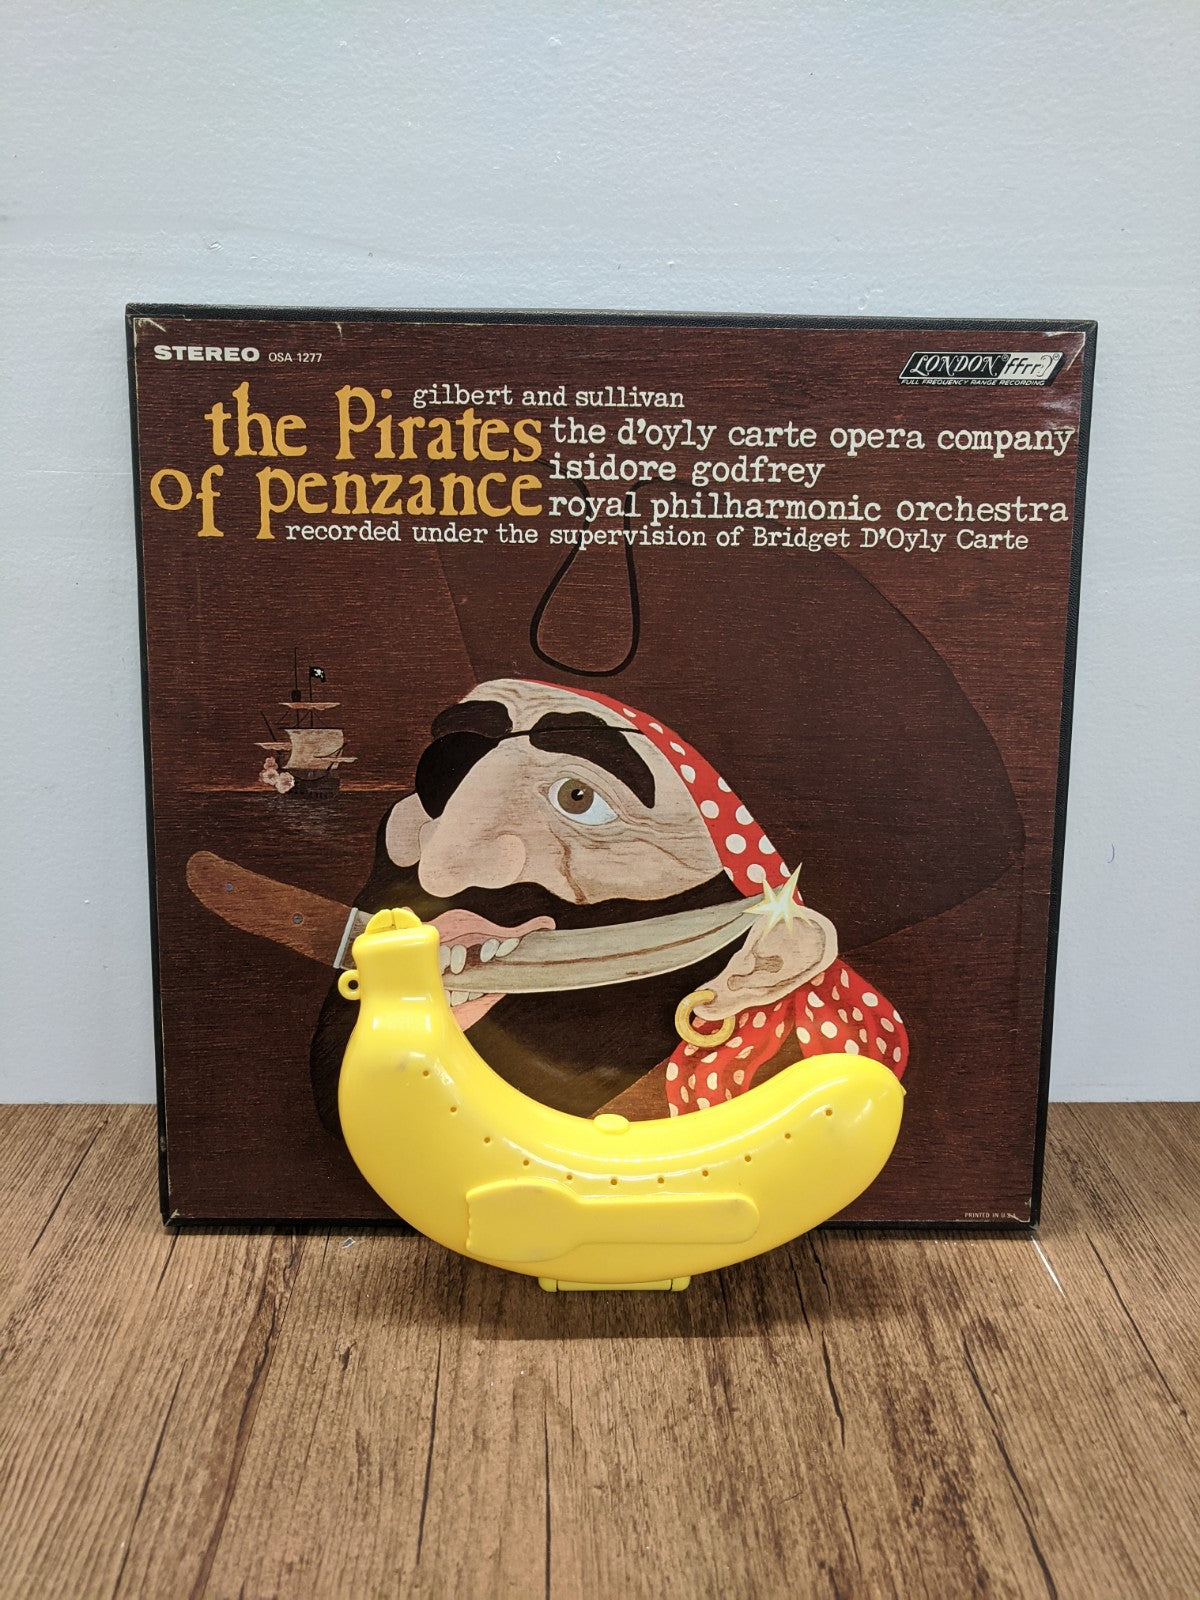 Gilbert & Sullivan - The Pirates of Penzance Vinyl